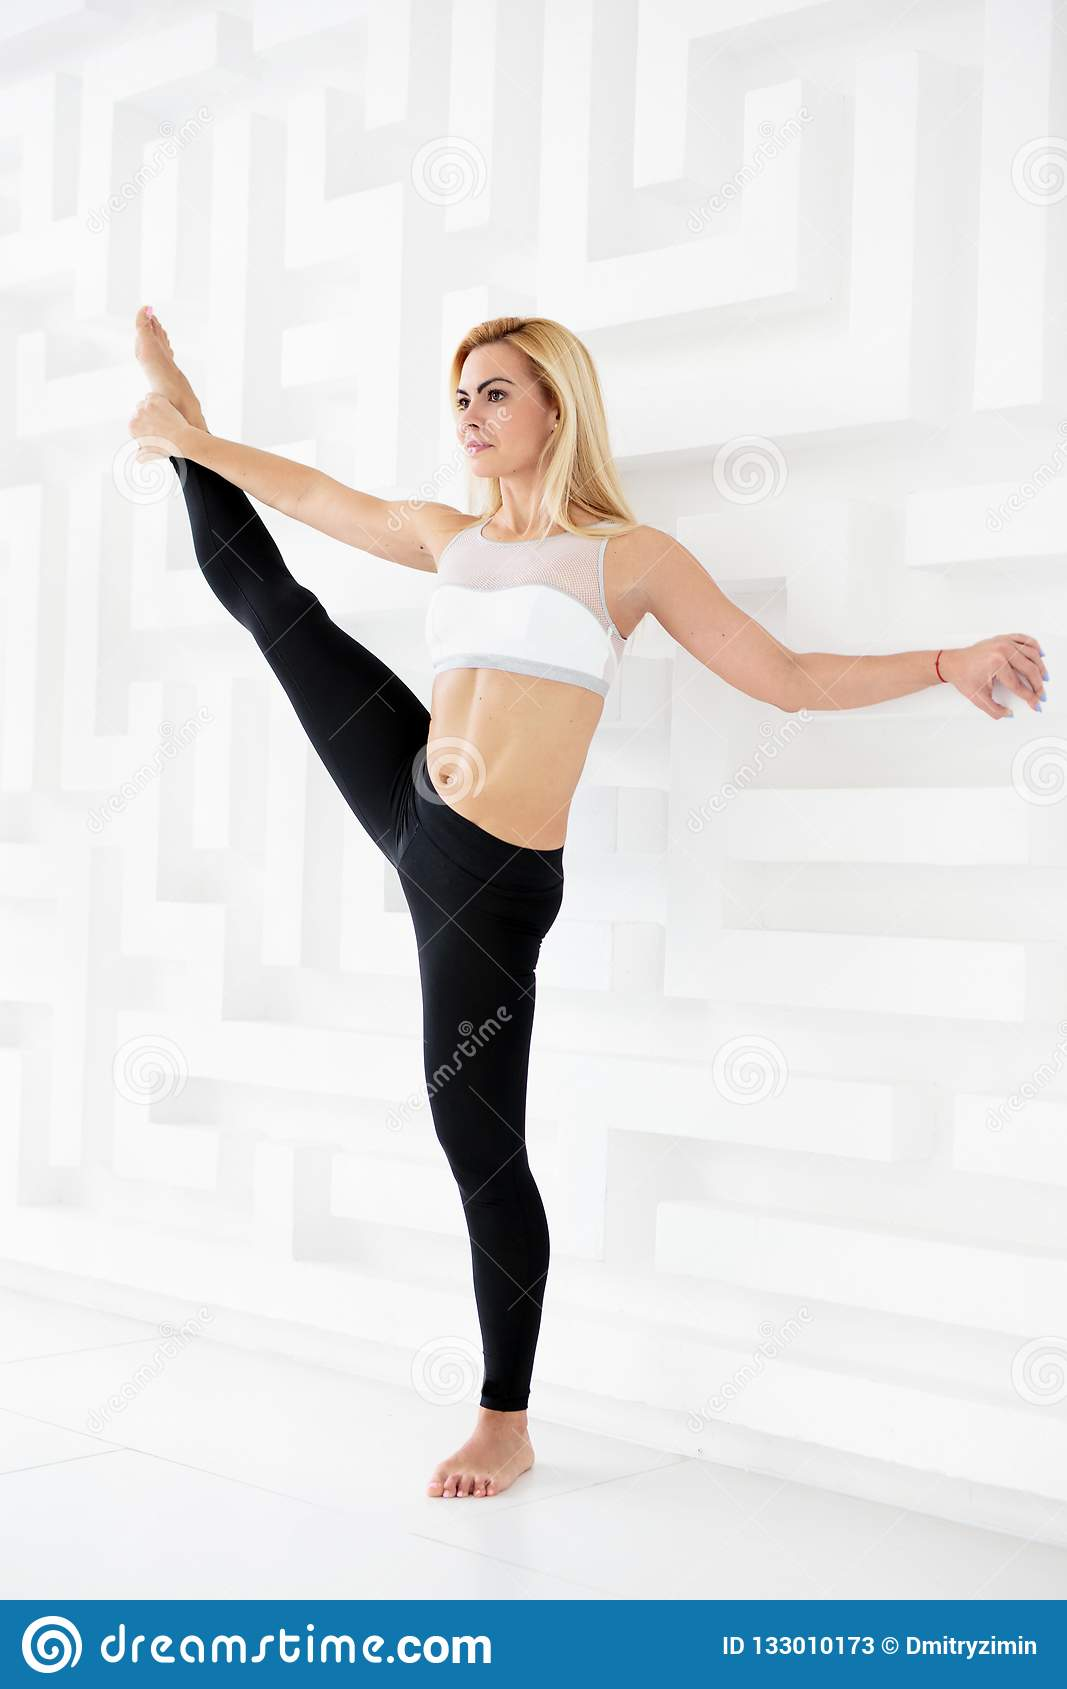 Full Length Portrait Of Young Woman Doing A Yoga Pose Standing